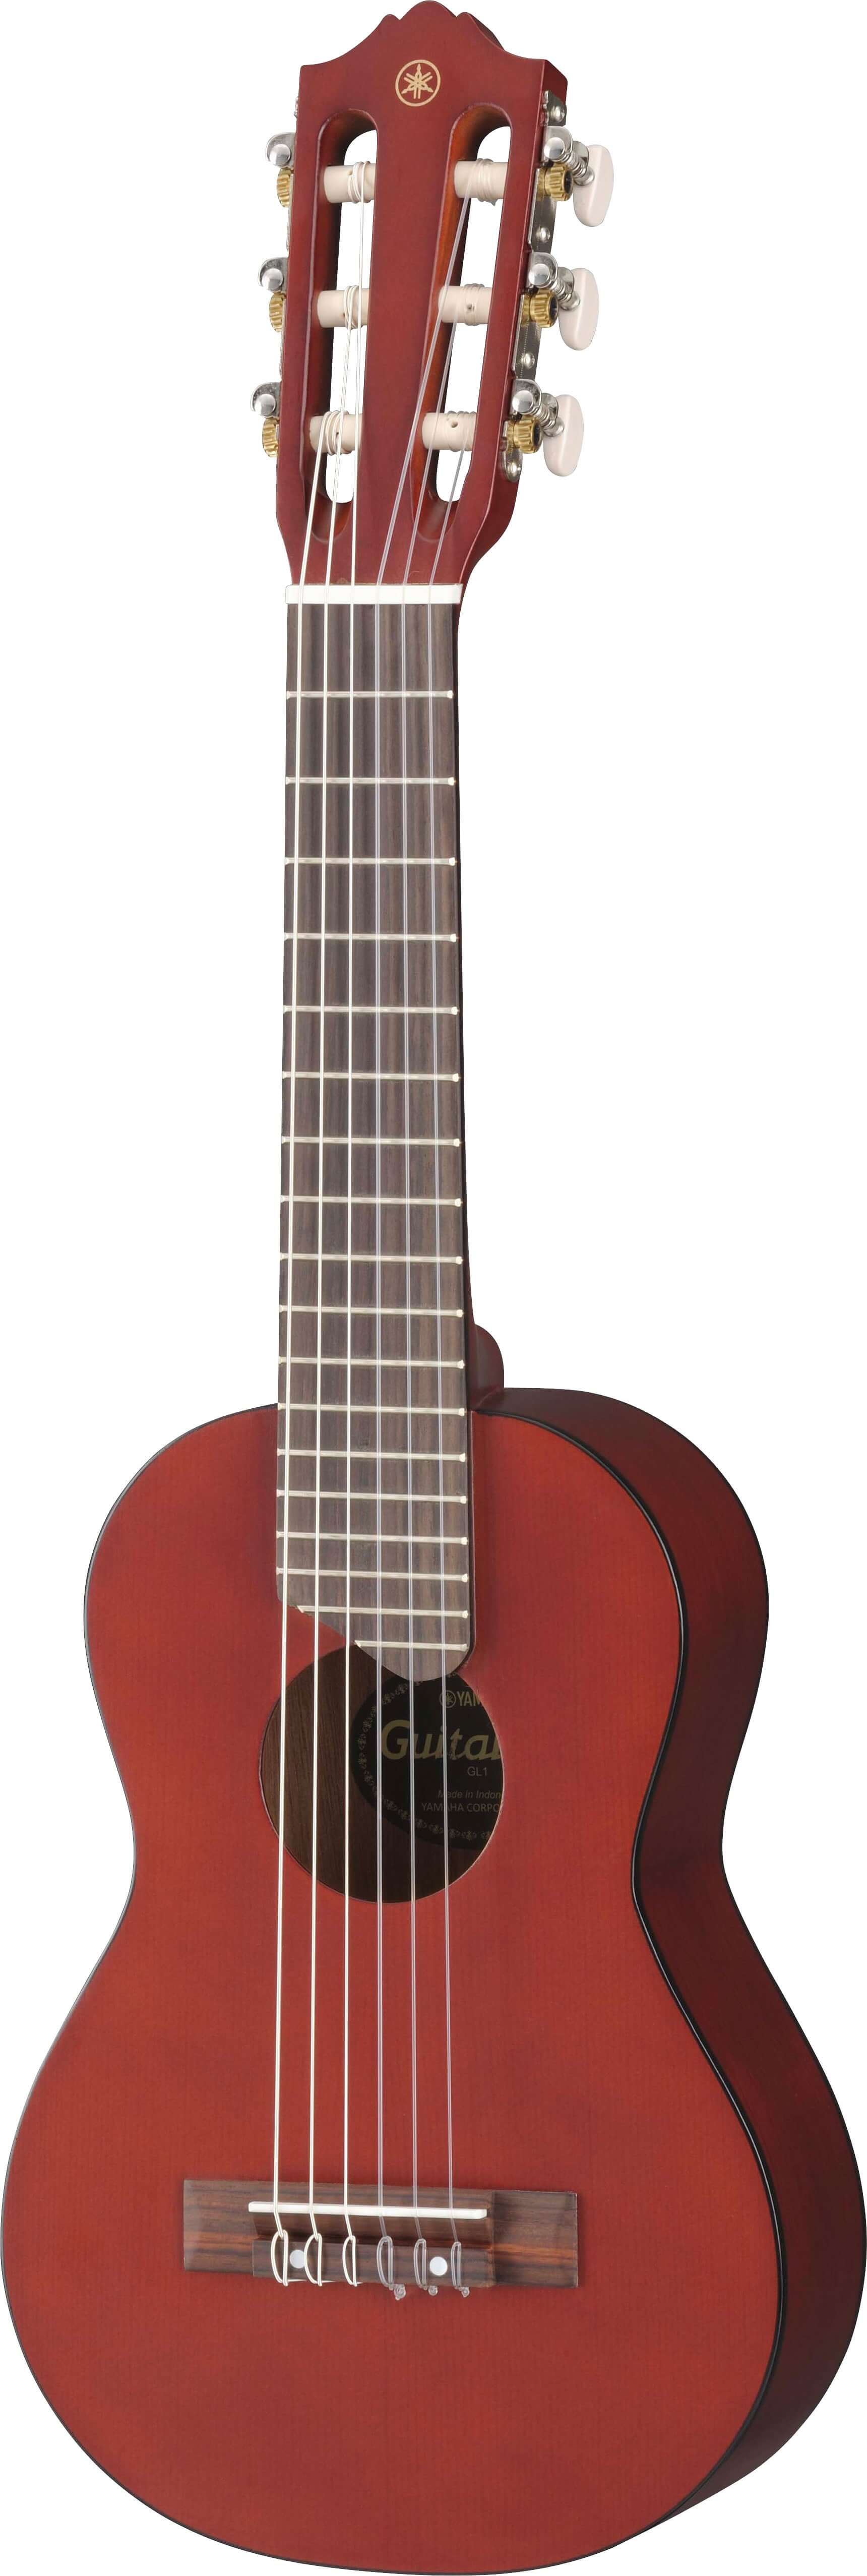 Guitalele Yamaha GL1 Persimmon Brown